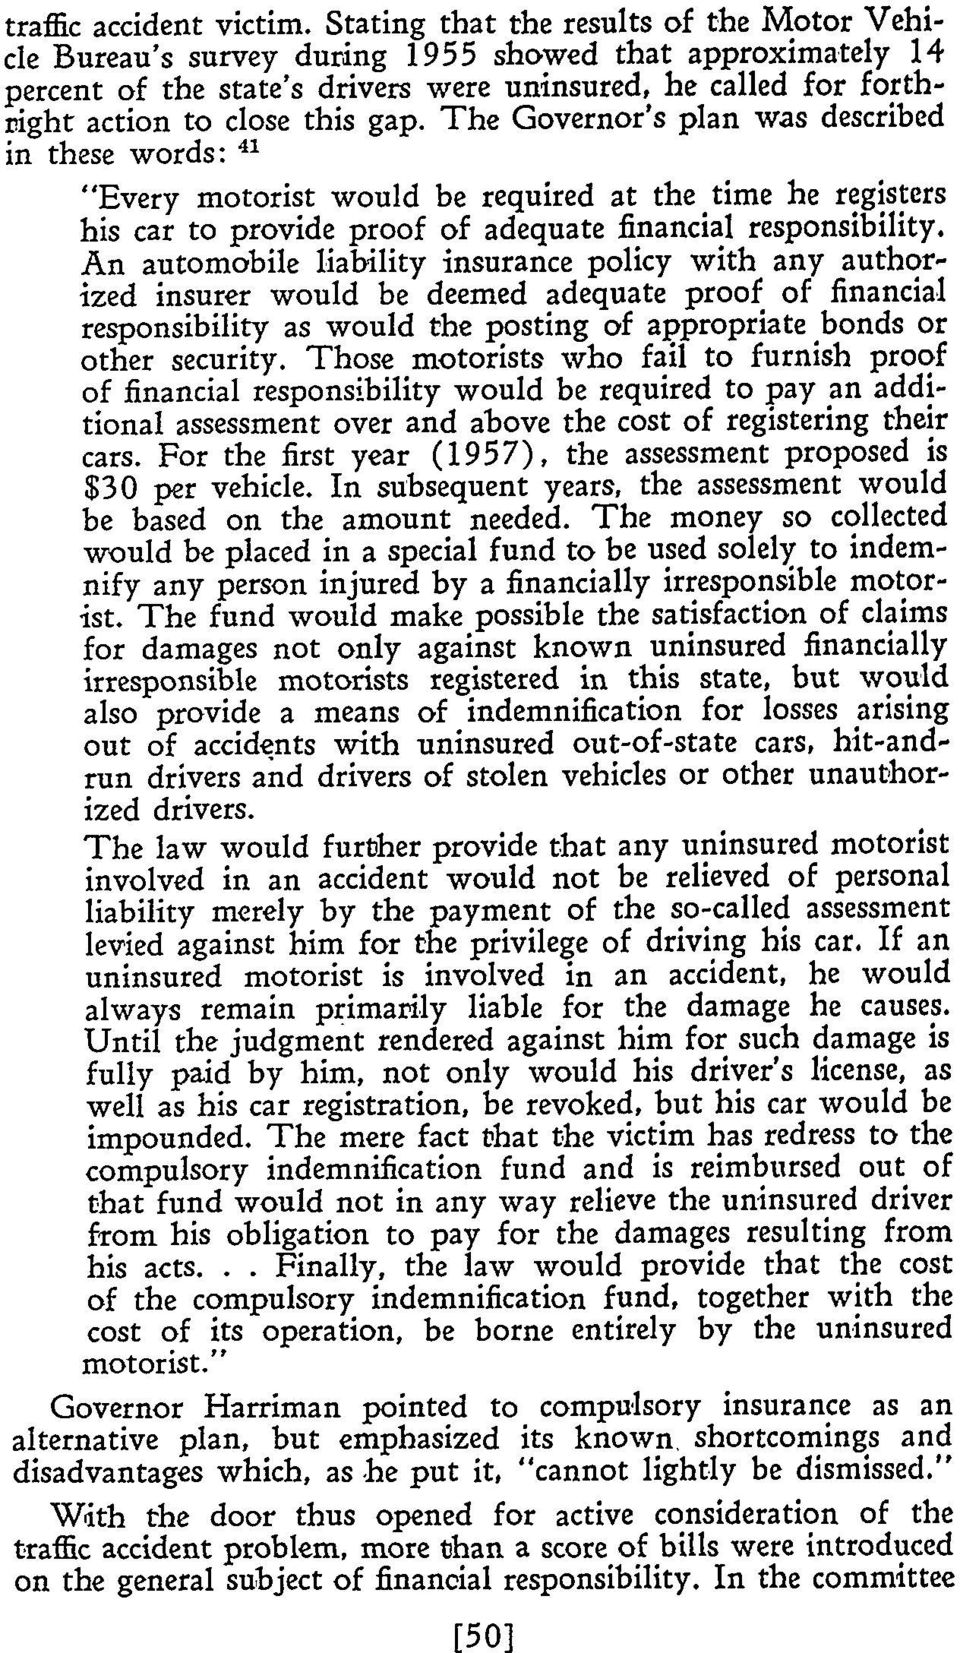 "The Governor's plan was described in these words: 41 ""Every motorist would be required at the time he registers his car to provide proof of adequate financial responsibility."